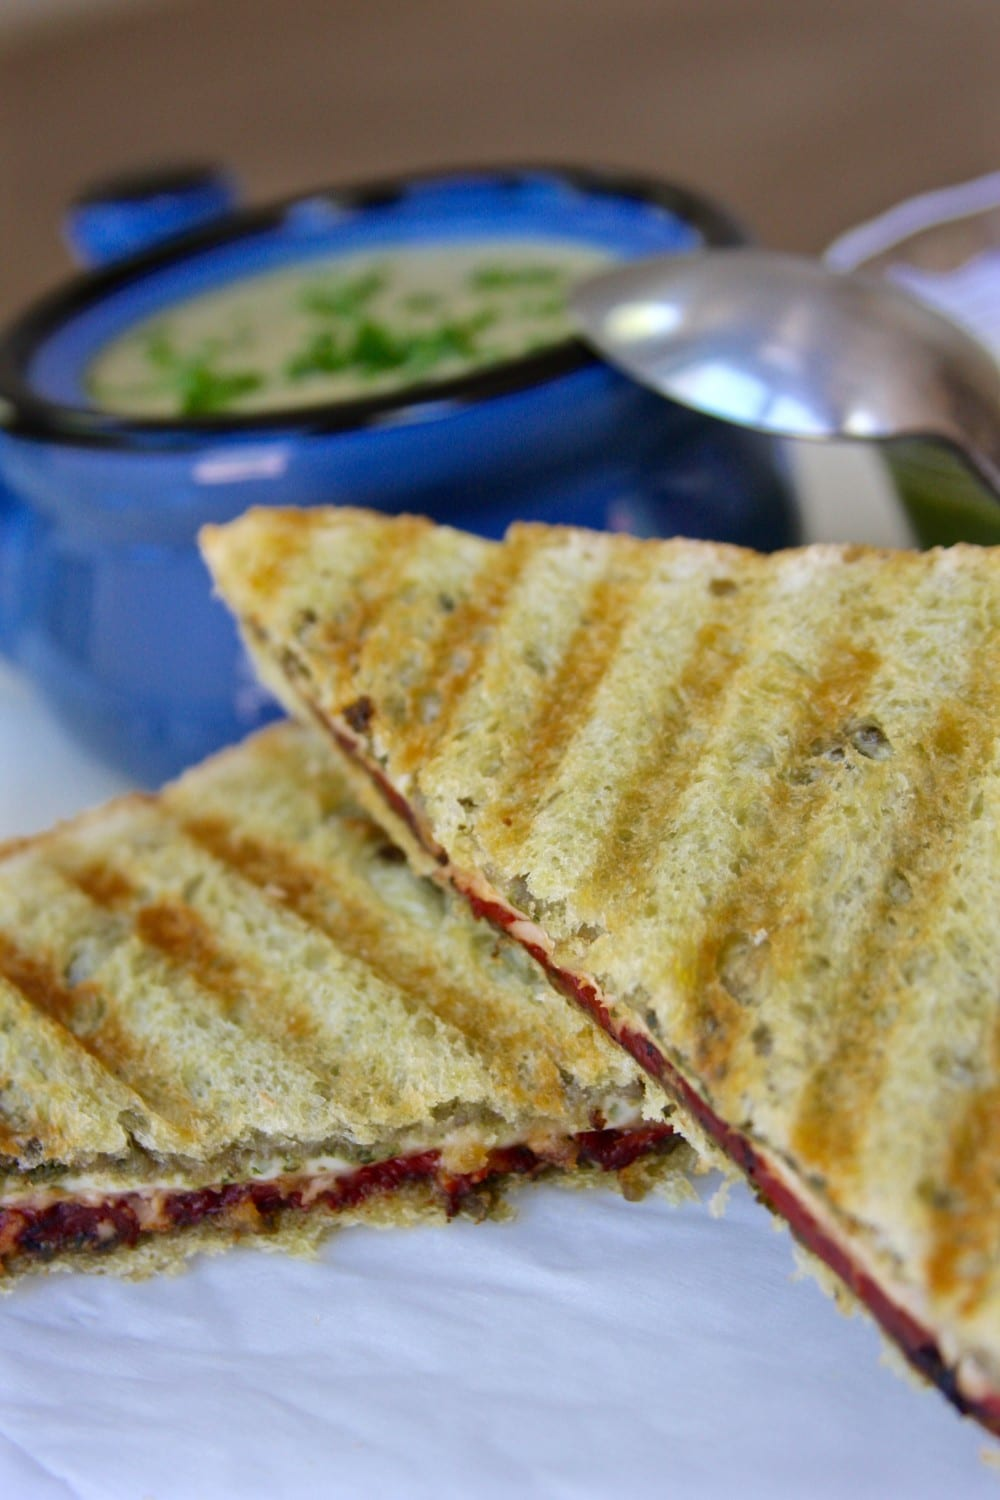 Turkey Pesto Panini is a comfort food recipe that goes beautifully with soup. Roasted red peppers and pesto make this sandwich extra special.